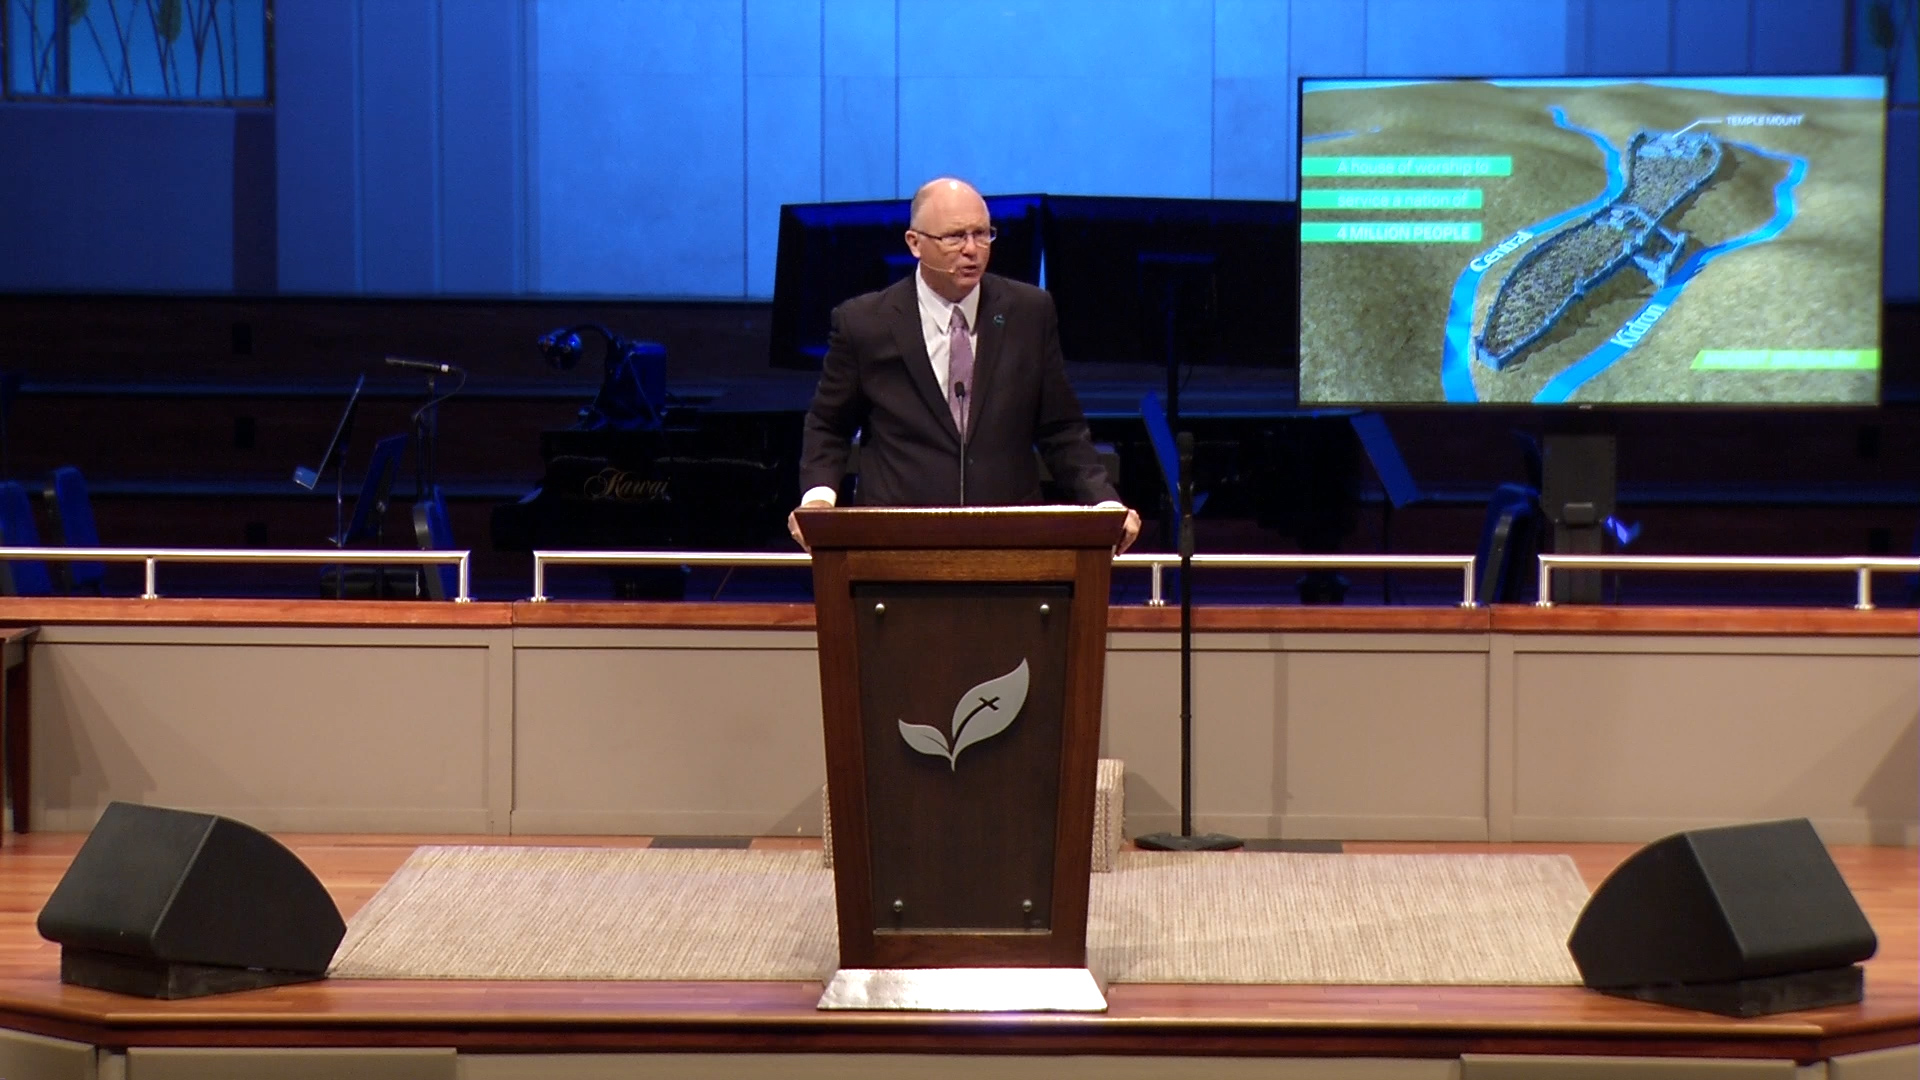 Pastor Paul Chappell: Reaching Forth in Preparation